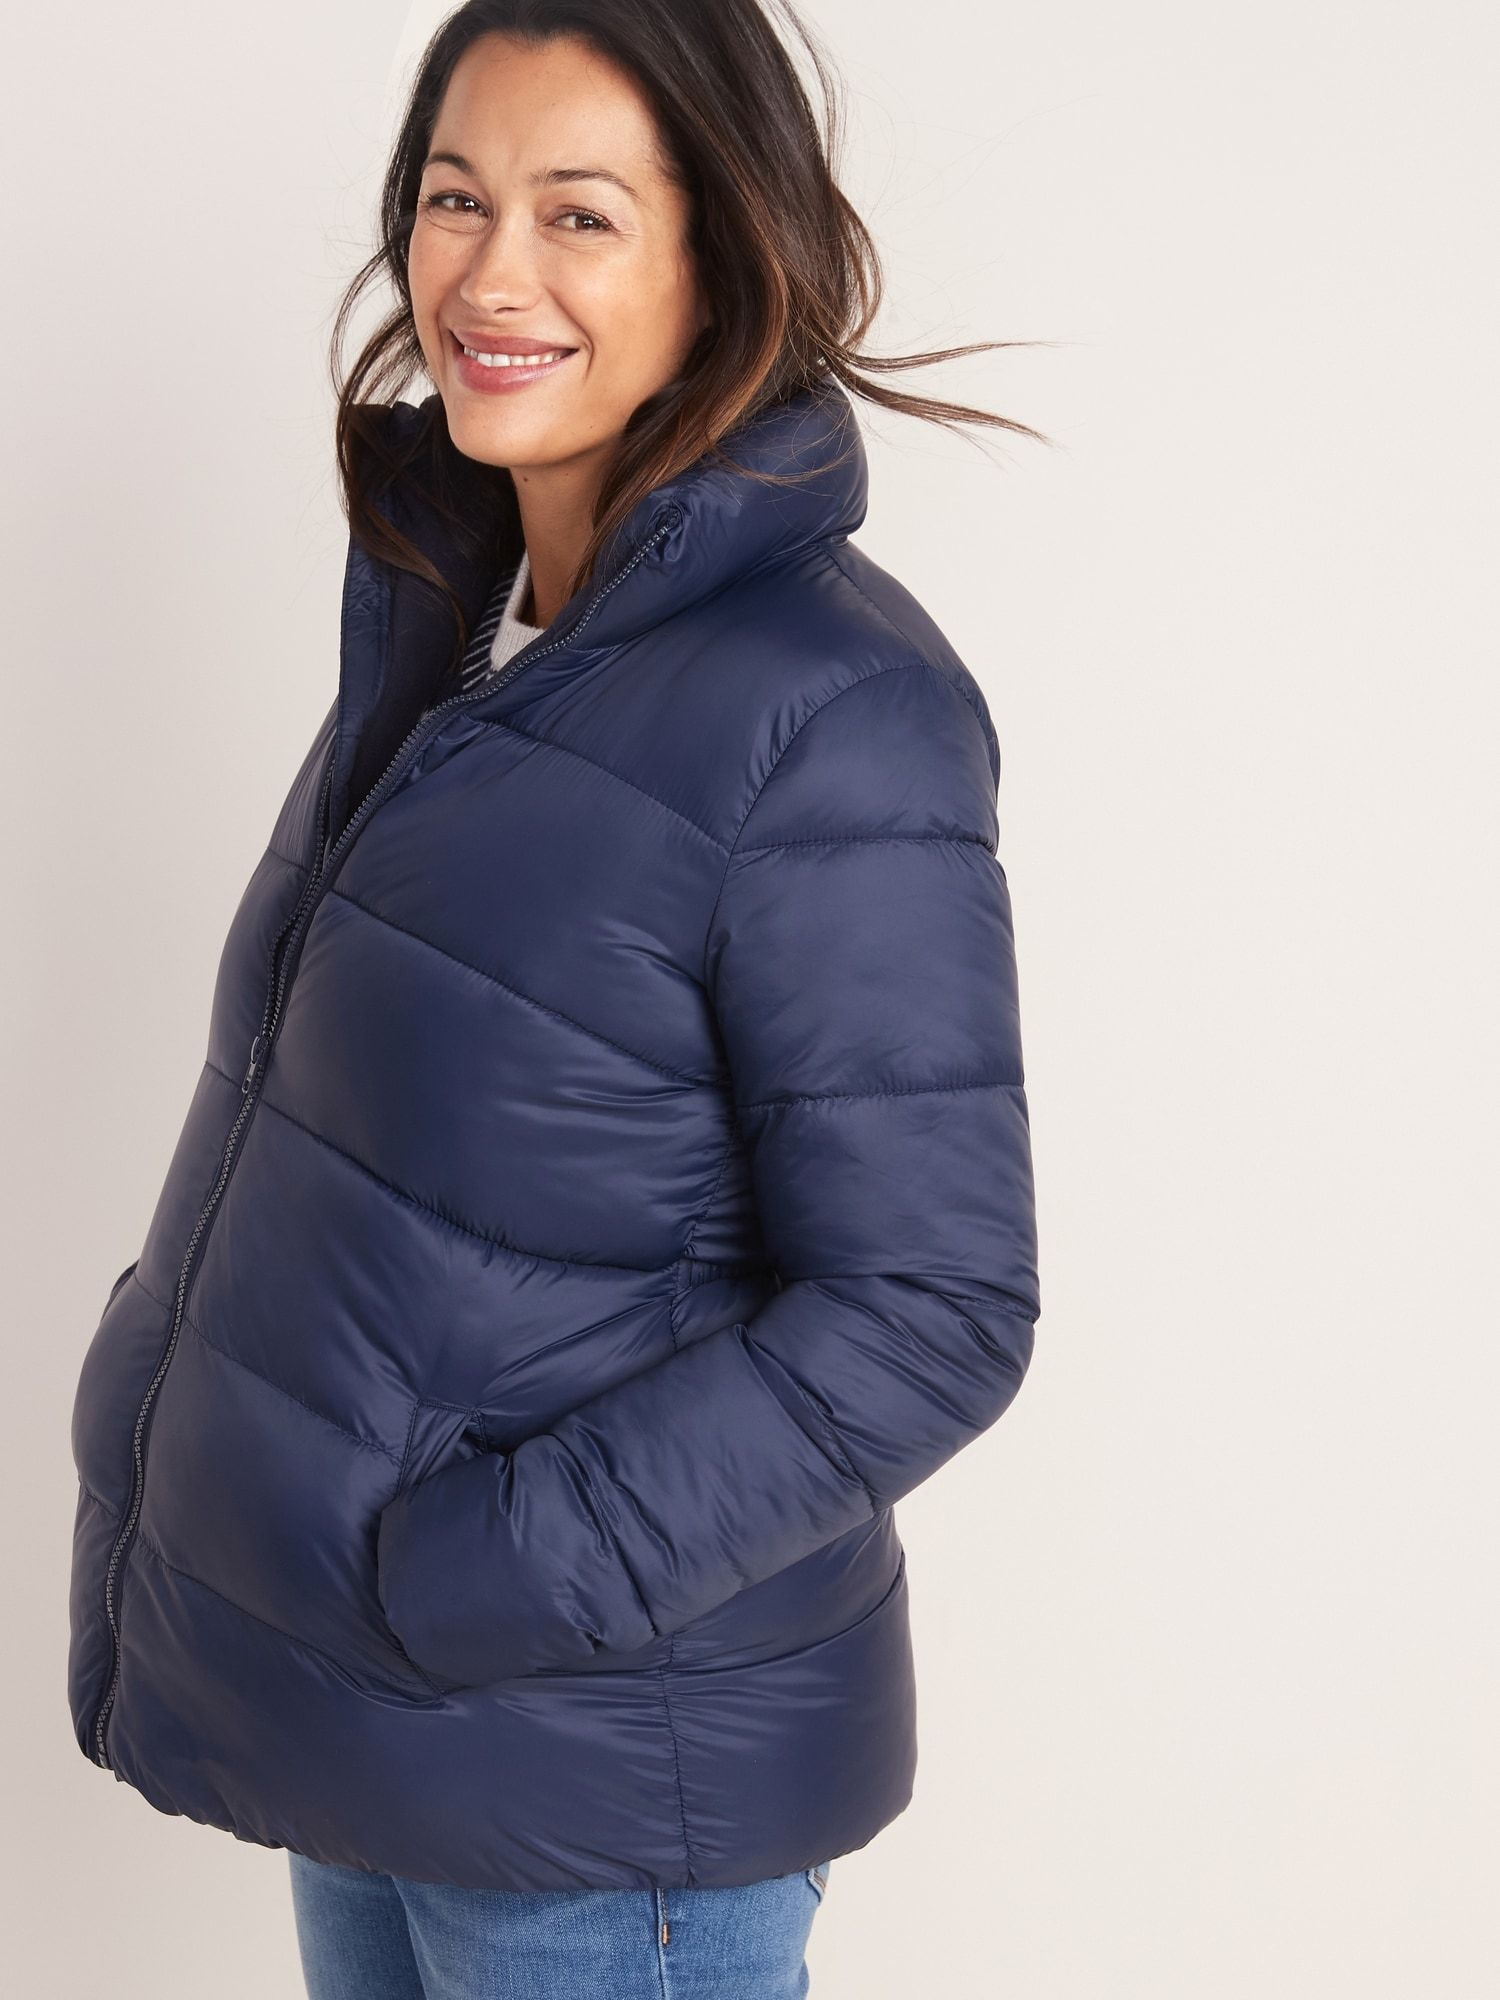 Maternity Frost Free Puffer Jacket Maternity Jacket Old Navy Puffer [ 2000 x 1500 Pixel ]